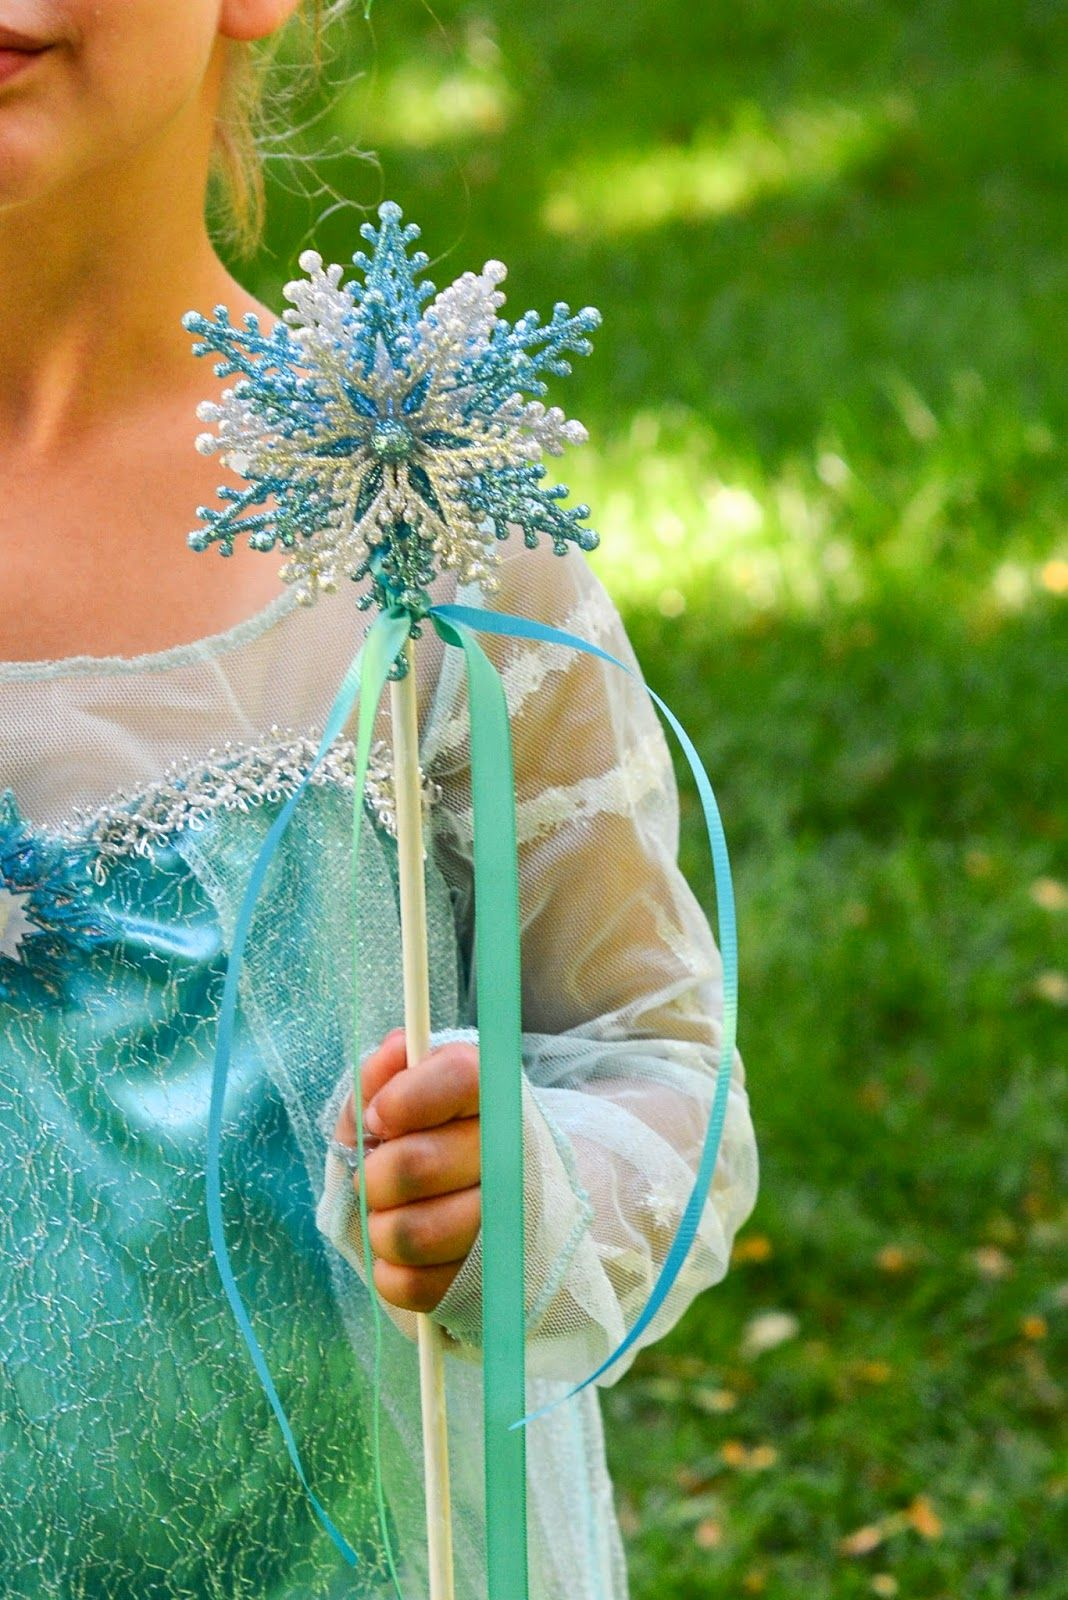 9 Awesome Frozen Craft Ideas And Activities For Kids